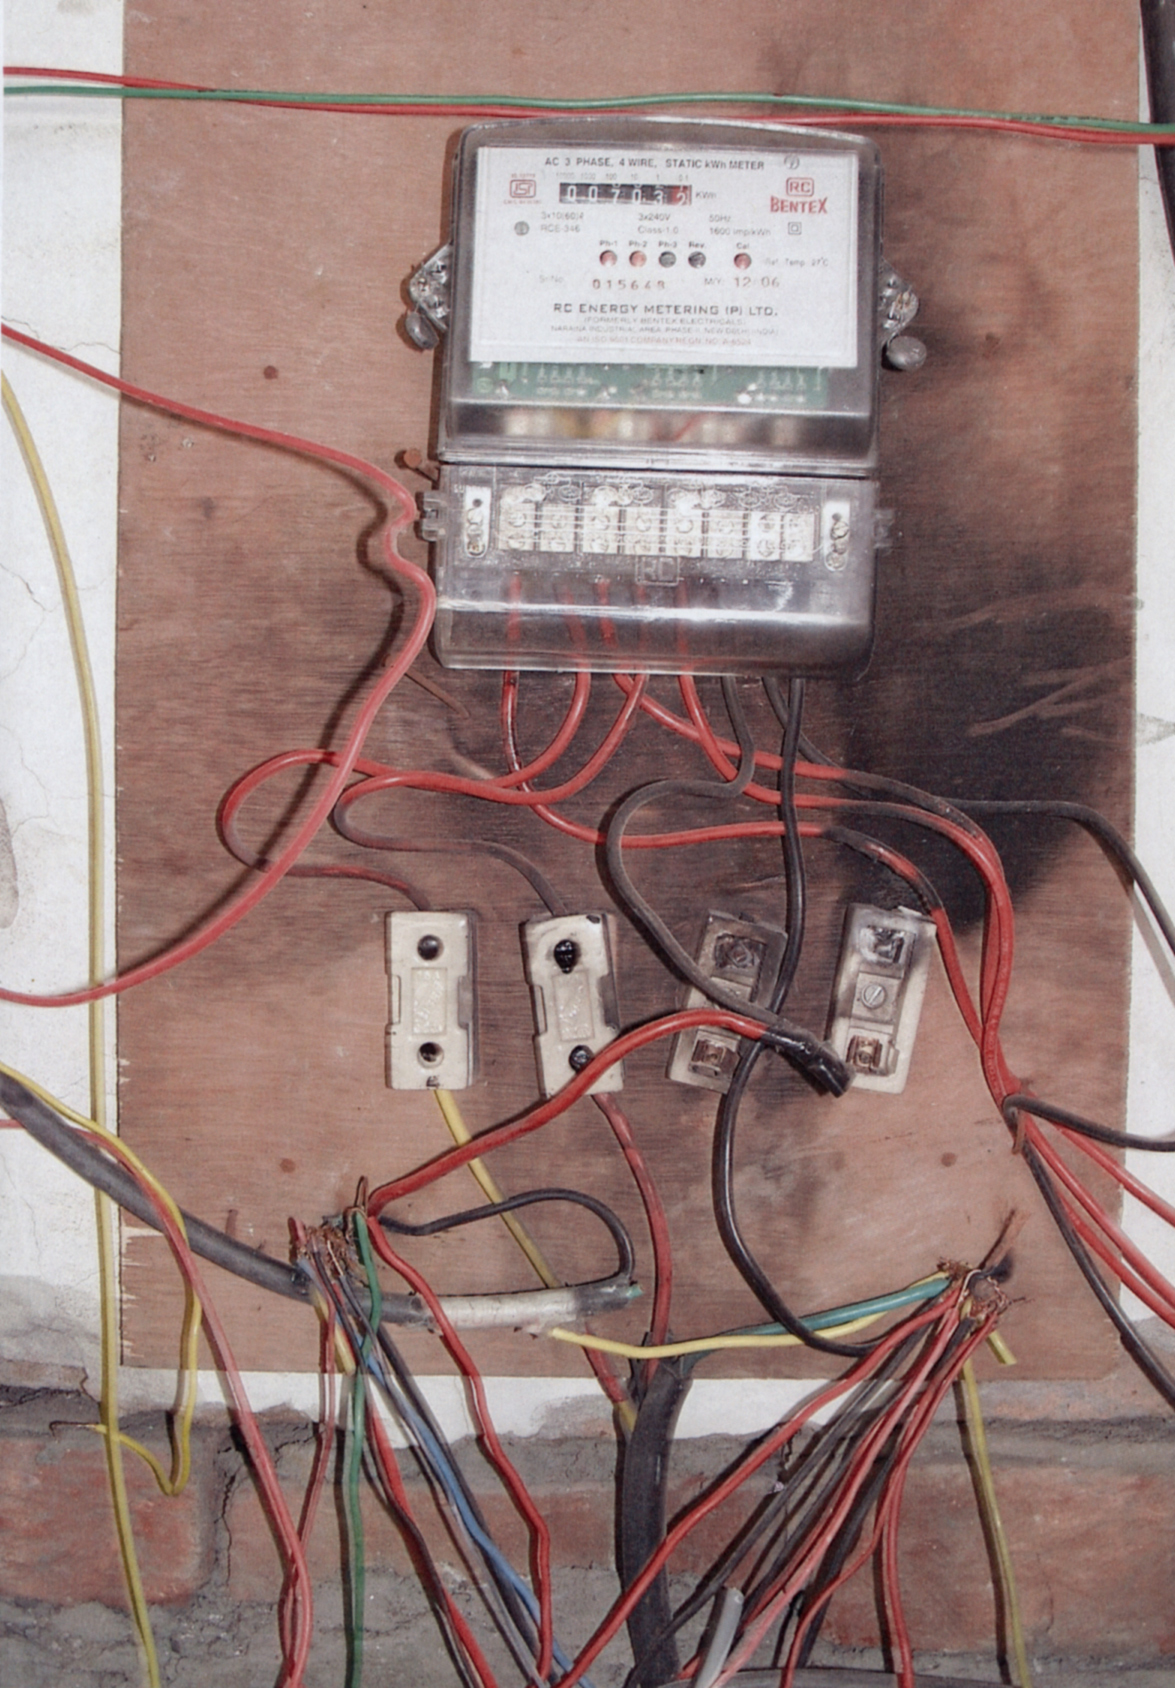 hight resolution of funny bad electrical wiring wiring diagram datasource good vs bad electrical wiring bad electrical wiring